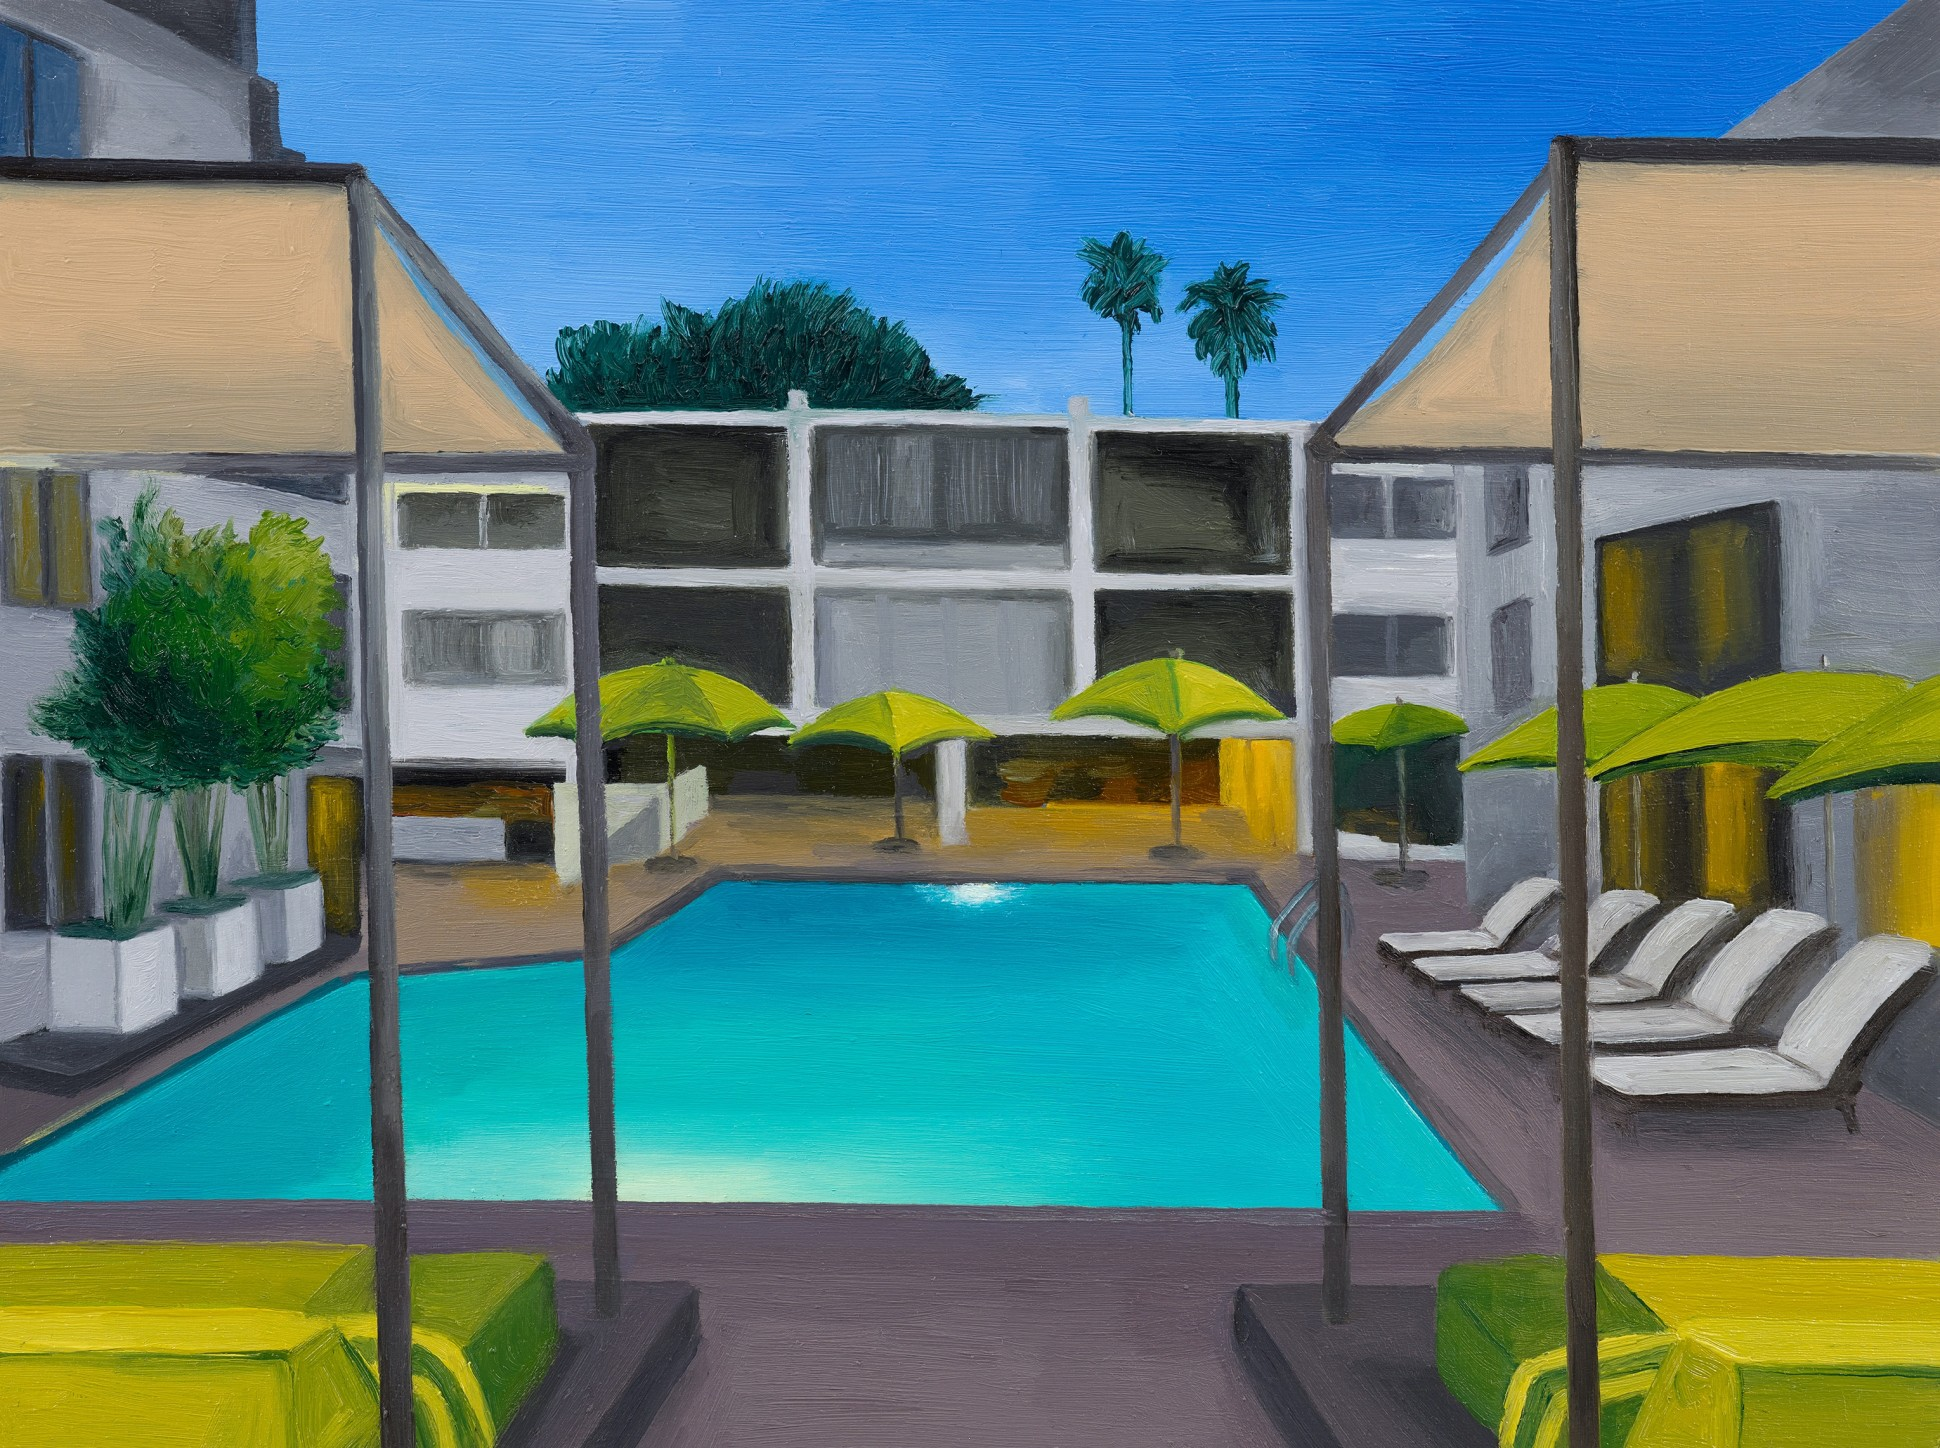 Sunset Marquis, 2021 Oil on panel 15.5 x 20.5 / 6 x 8 in.